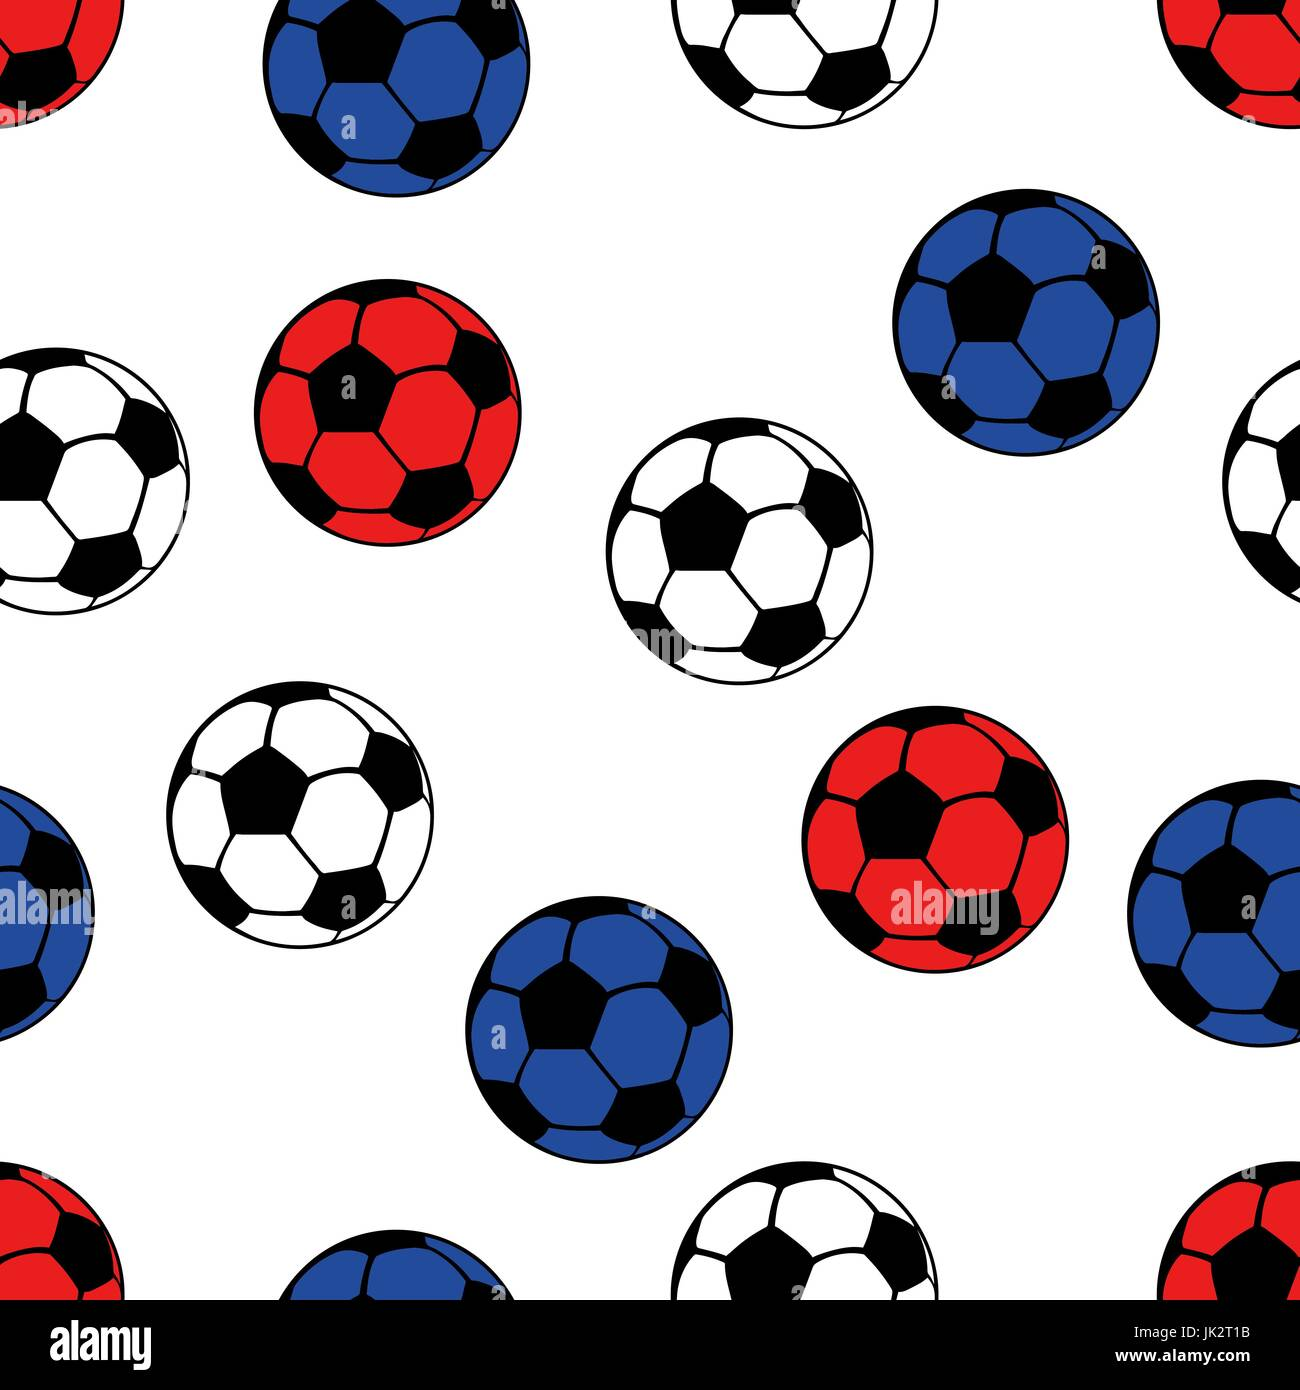 Football balls seamless pattern, vector sport background. White, blue and red balls on a white backdrop - Stock Vector